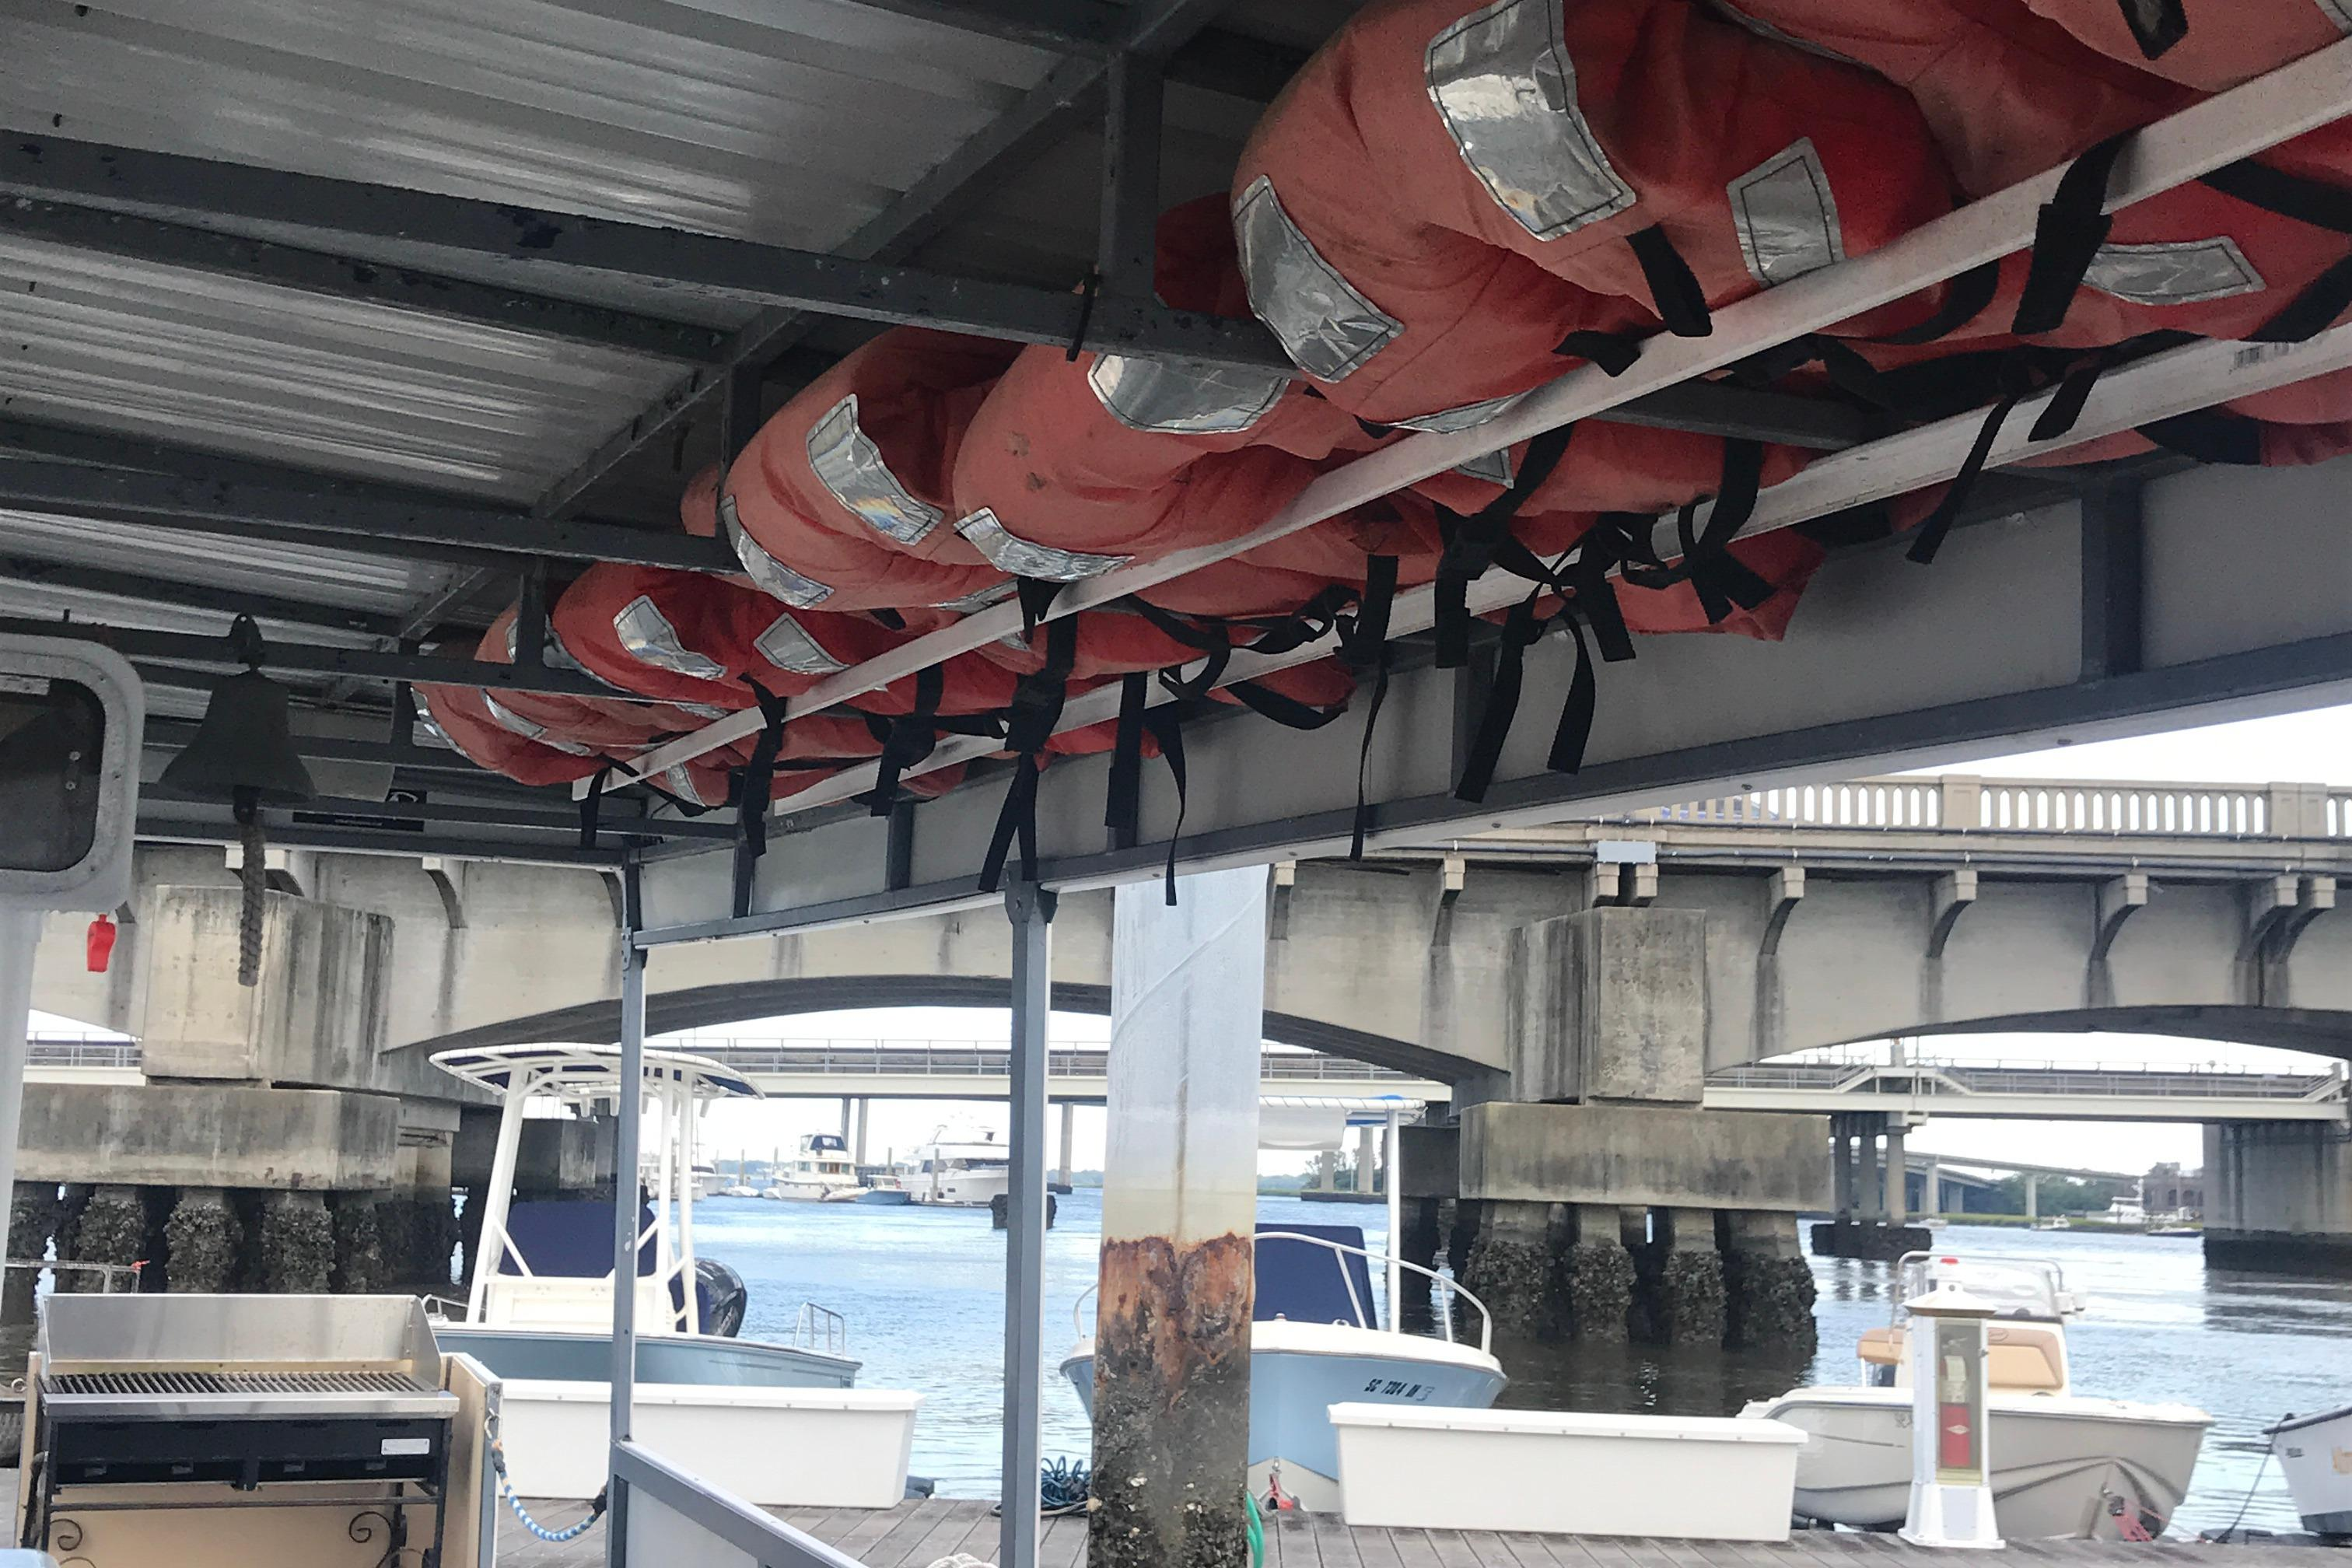 Southern Star 32 Commerical Catamaran - Starboard side overhead PFD storage